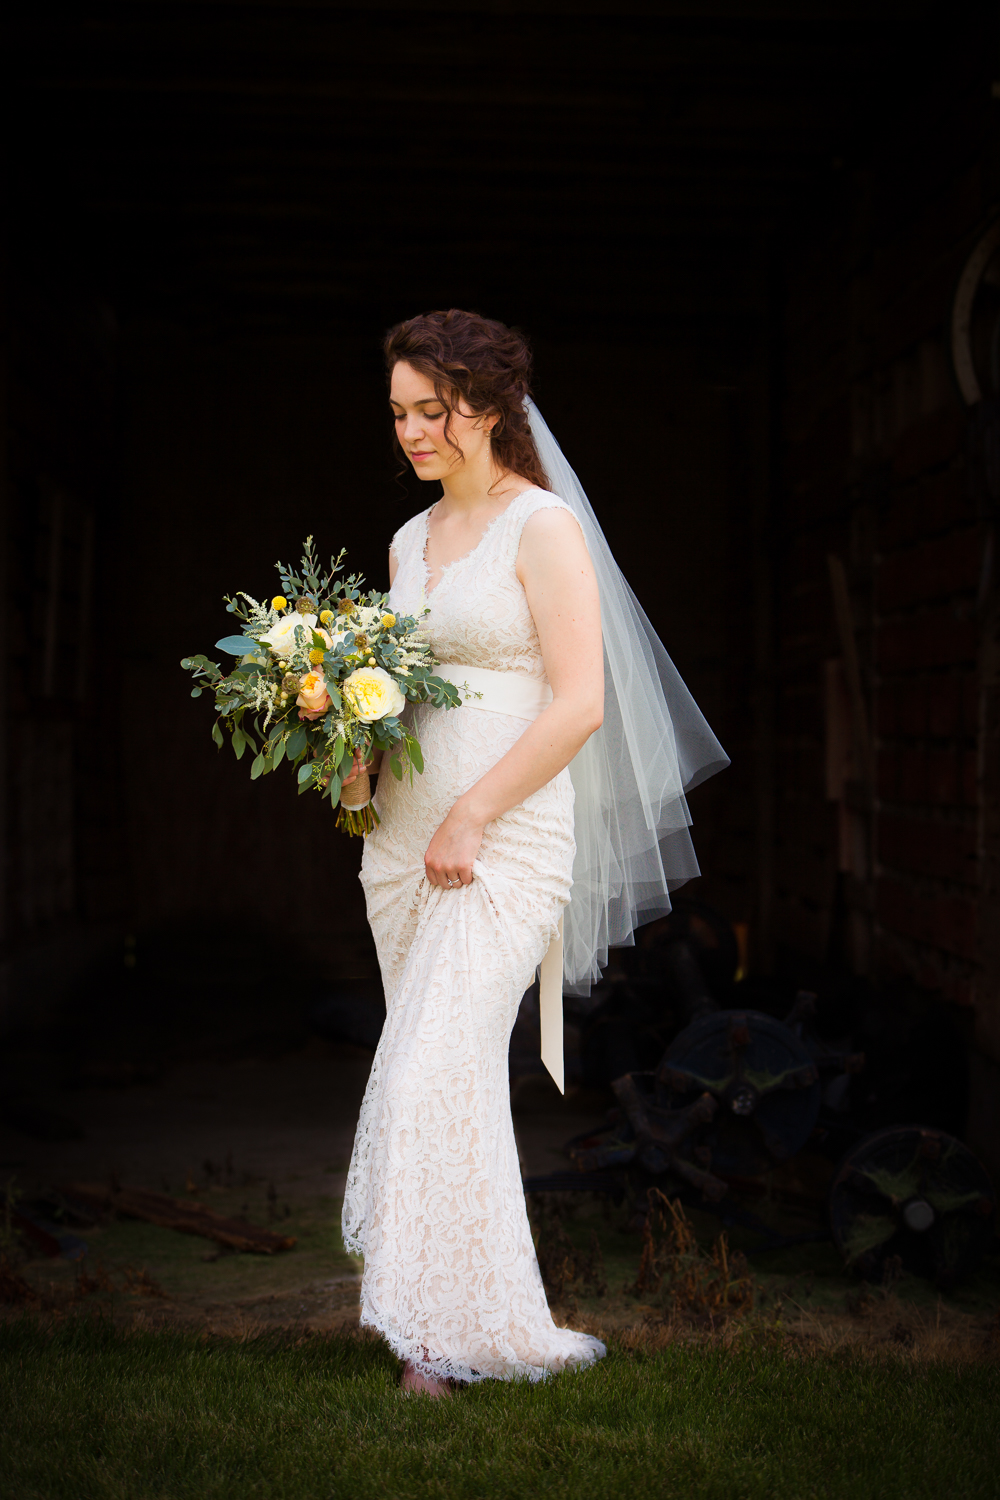 Bride-Portrait-Wedding-Photography.jpg